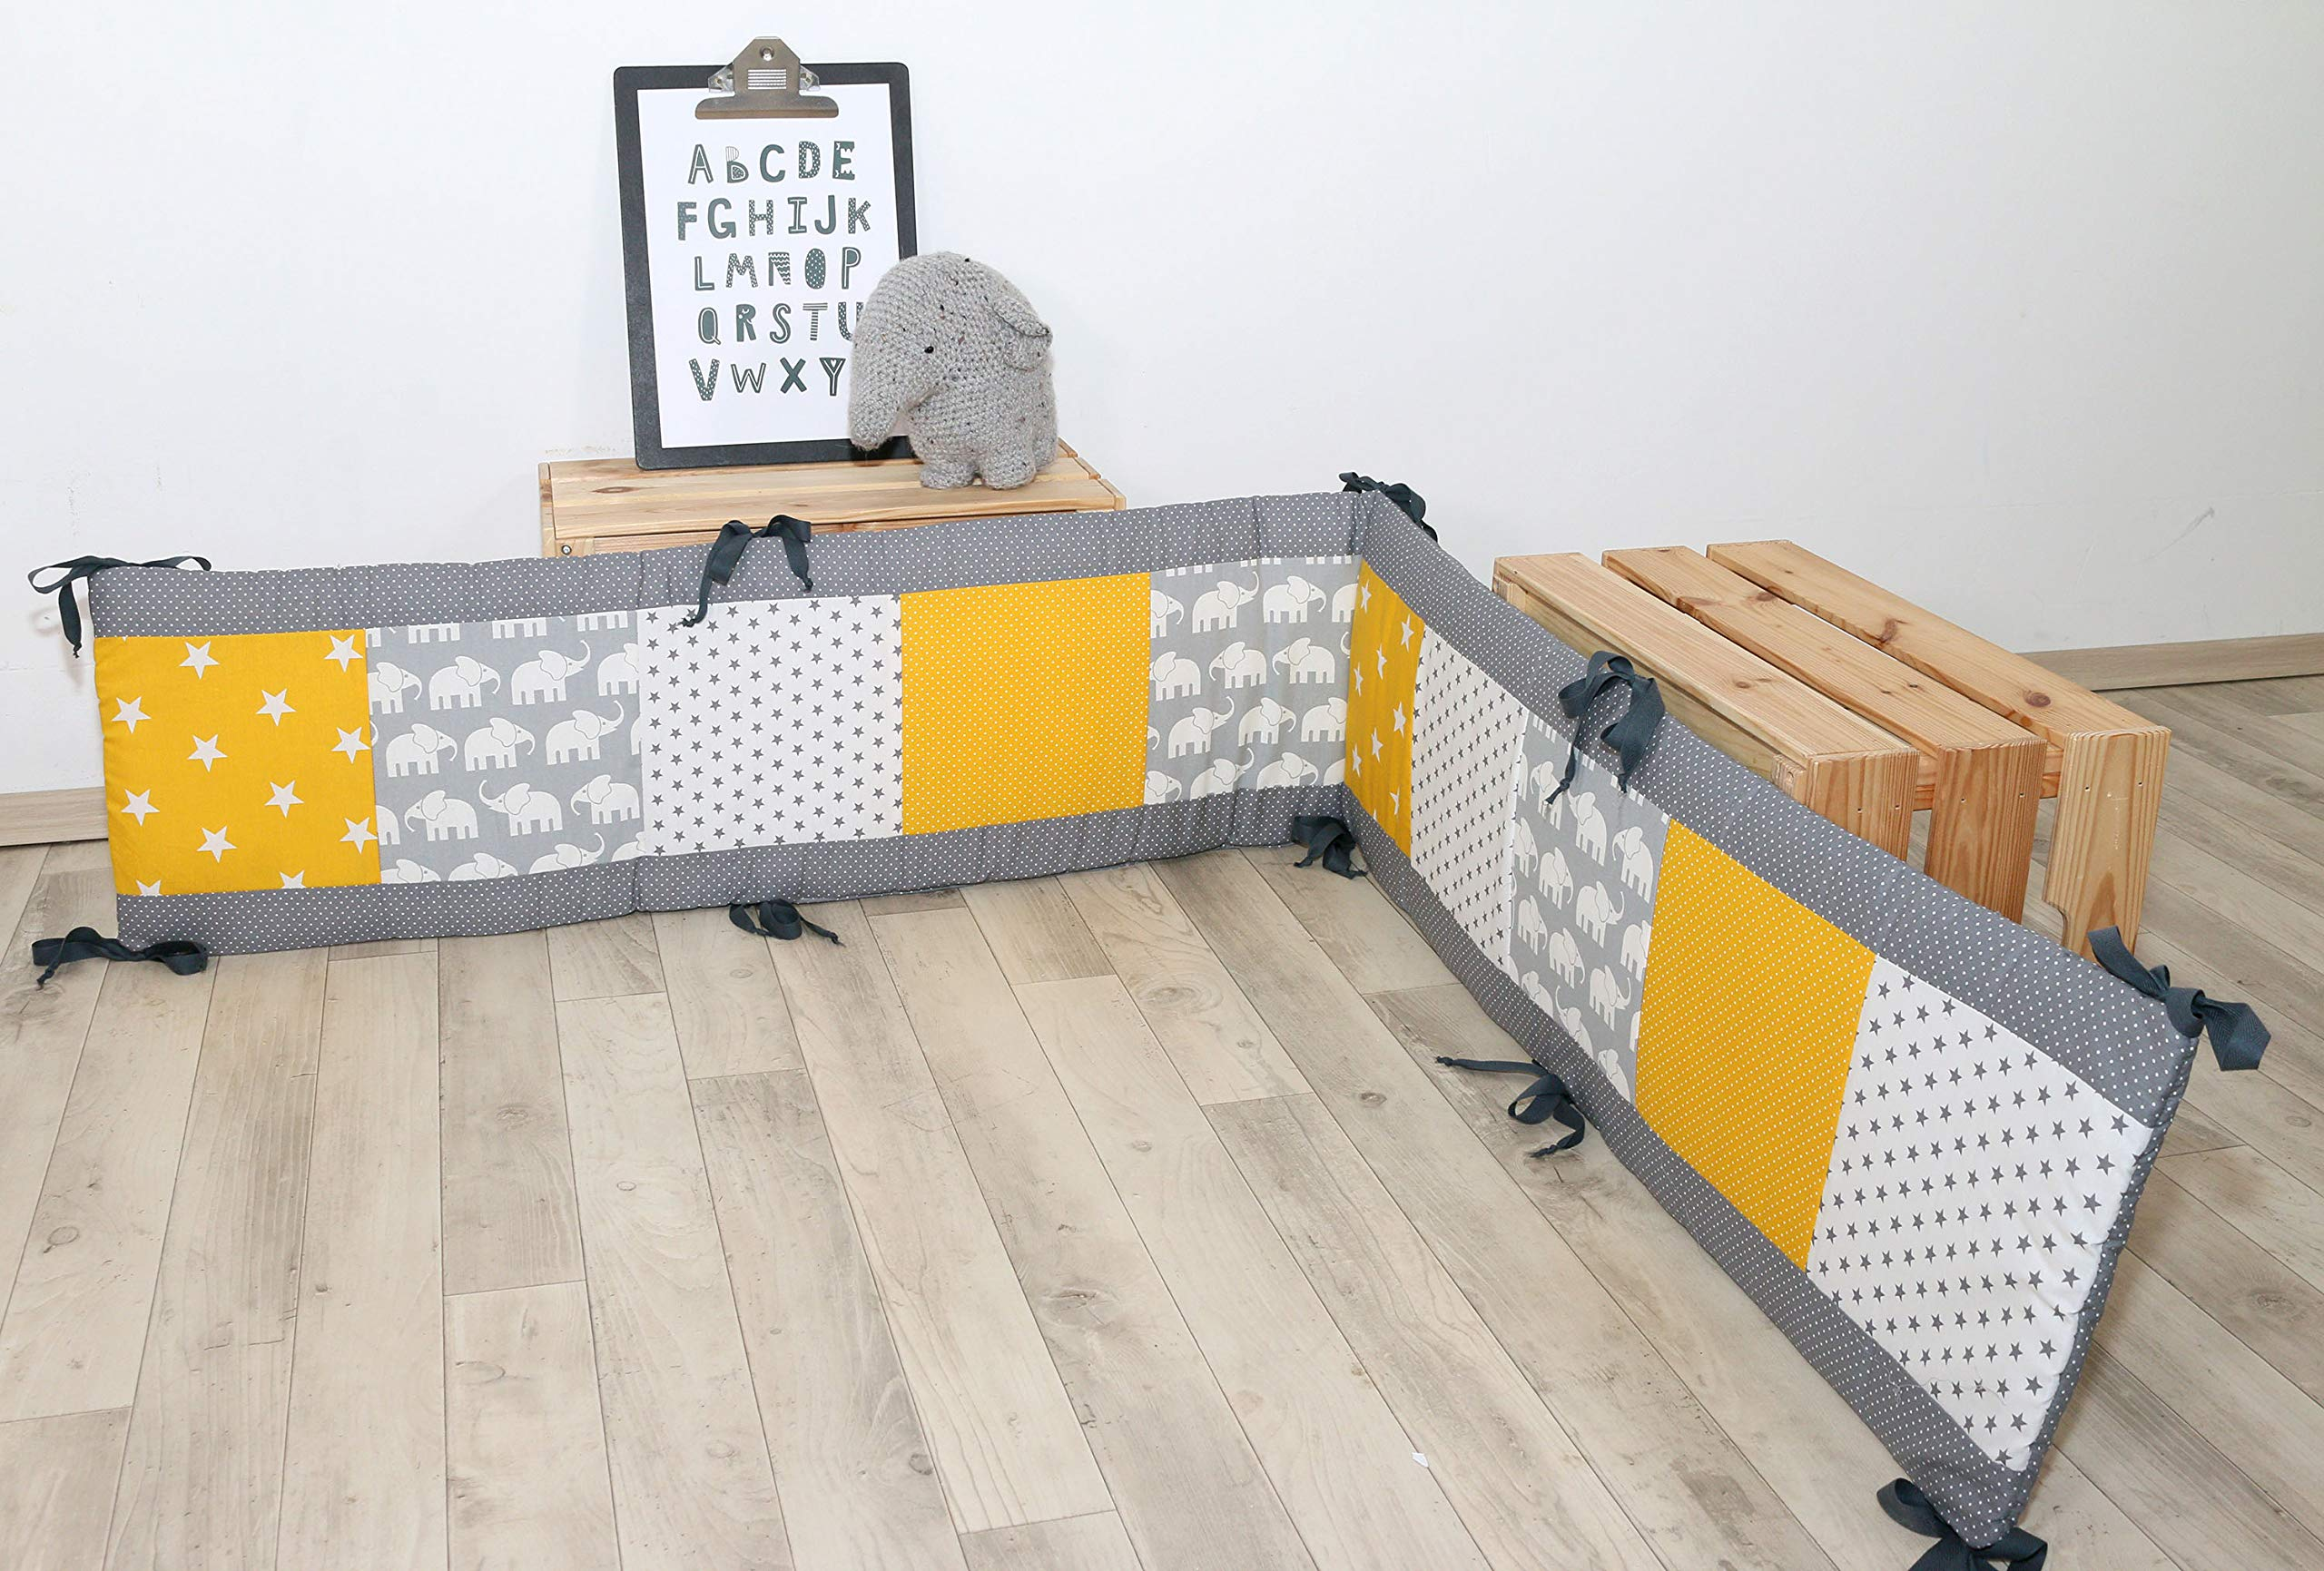 ULLENBOOM® Bumper- Yellow Elephants (400x 30cm Baby playpen Bumper, Full Surround Bumper Pads for 100x 100cm playpen) ULLENBOOM This 400x 30cm patchwork bumper serves as a protective insert and surround for 100x 100cm playpens, to provide babies with protection- especially head protection- from playpen bars The sizes 200x 30cm and 400x 30cm (full surround) are for playpens- the 'full surround' bumper comes in two sections. ULLENBOOM also offers additional sizes for 140x 70cm and 120x 60cm cots These bumpers can be washed at 30 °C and the materials used are certified according to the Oeko-Tex standard (tested for harmful substances, hypoallergenic); smooth outer fabric: 100% cotton (Oeko-Tex); soft, thick wadding: 100% polyester (Oeko-Tex) 2